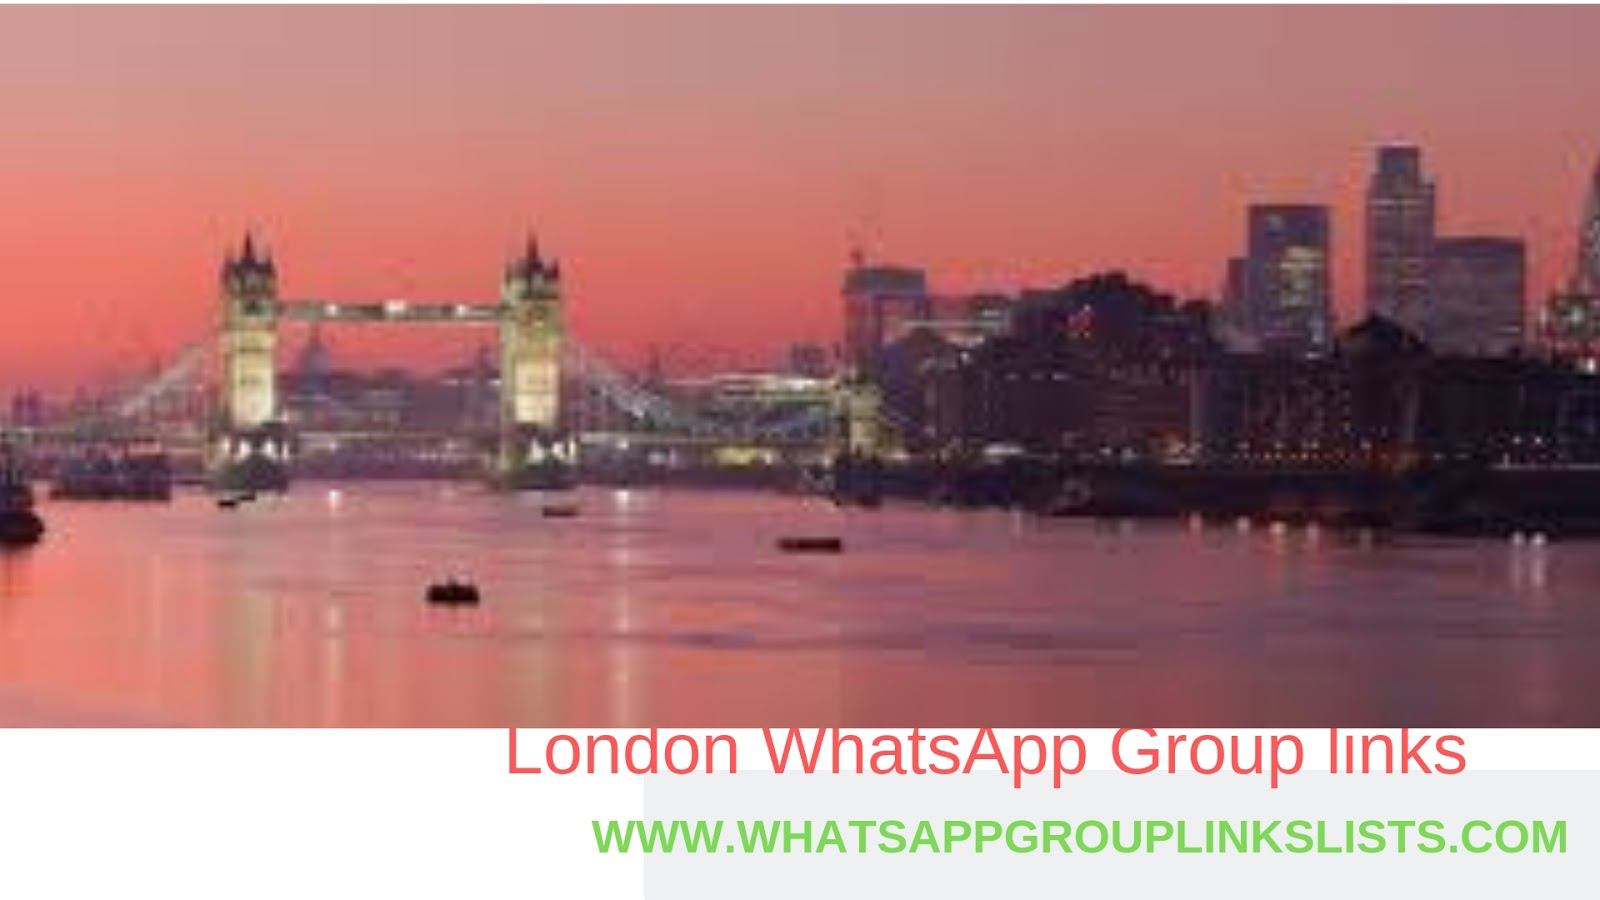 Join London WhatsApp Group Links List